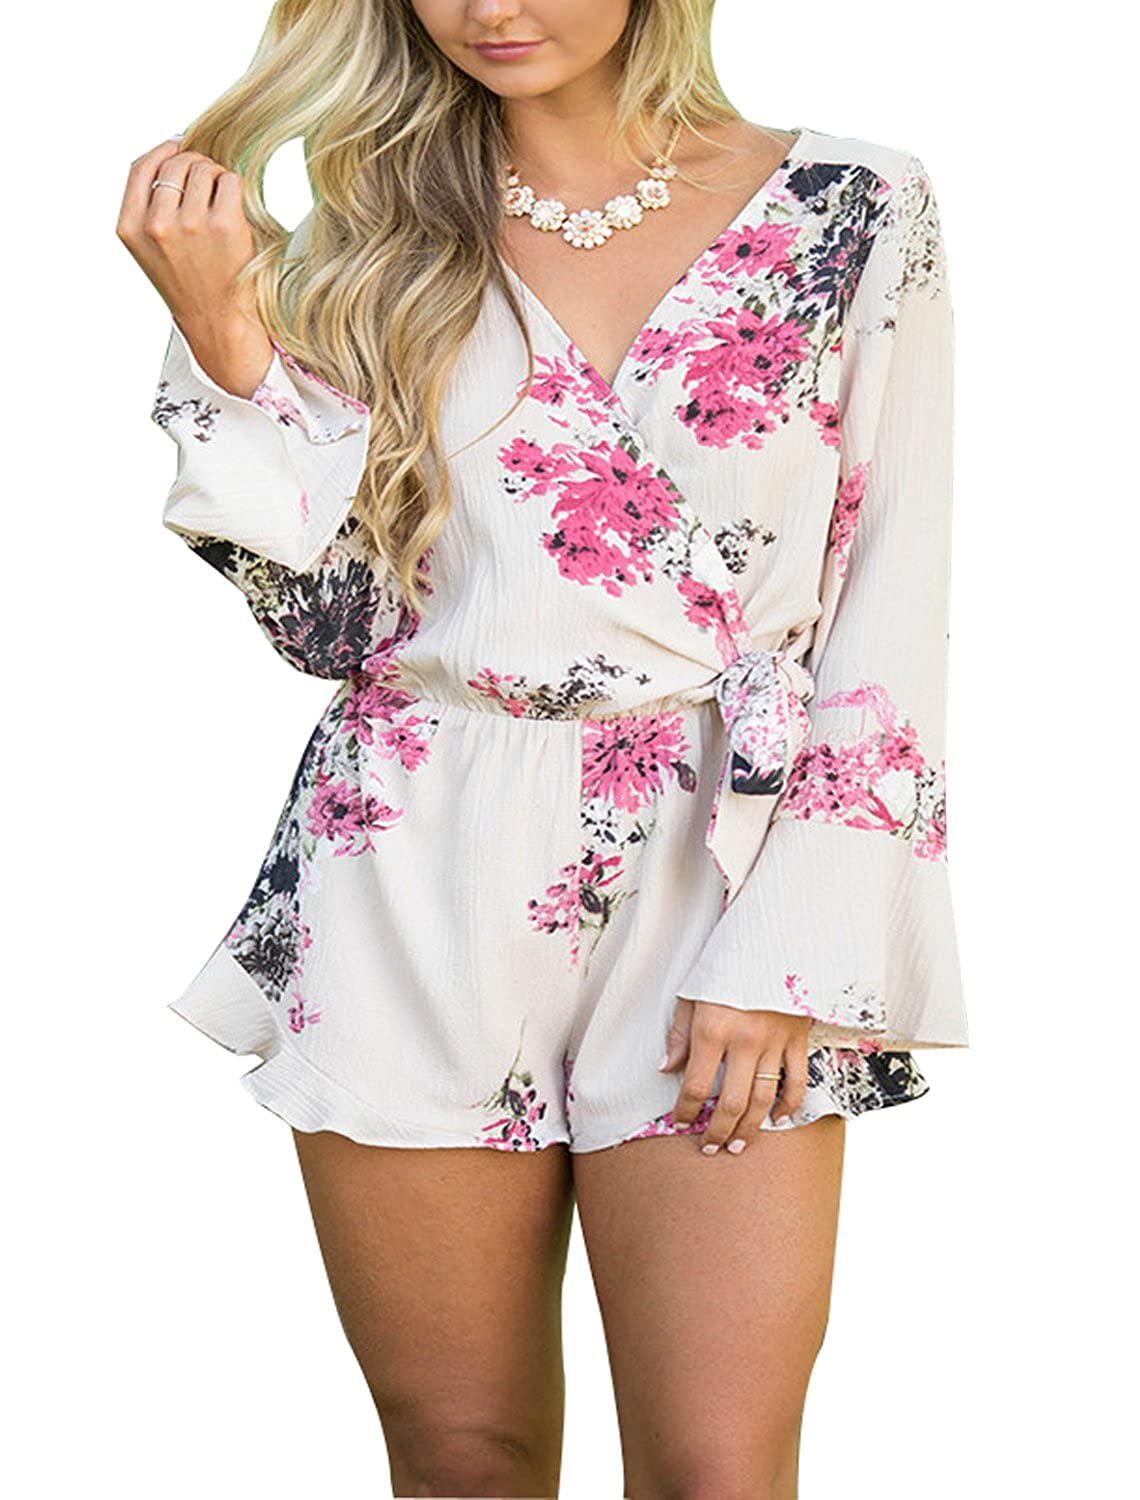 Womens Bohemian Long Sleeves V Neck Floral Print Short Romper Jumpsuit Outfit